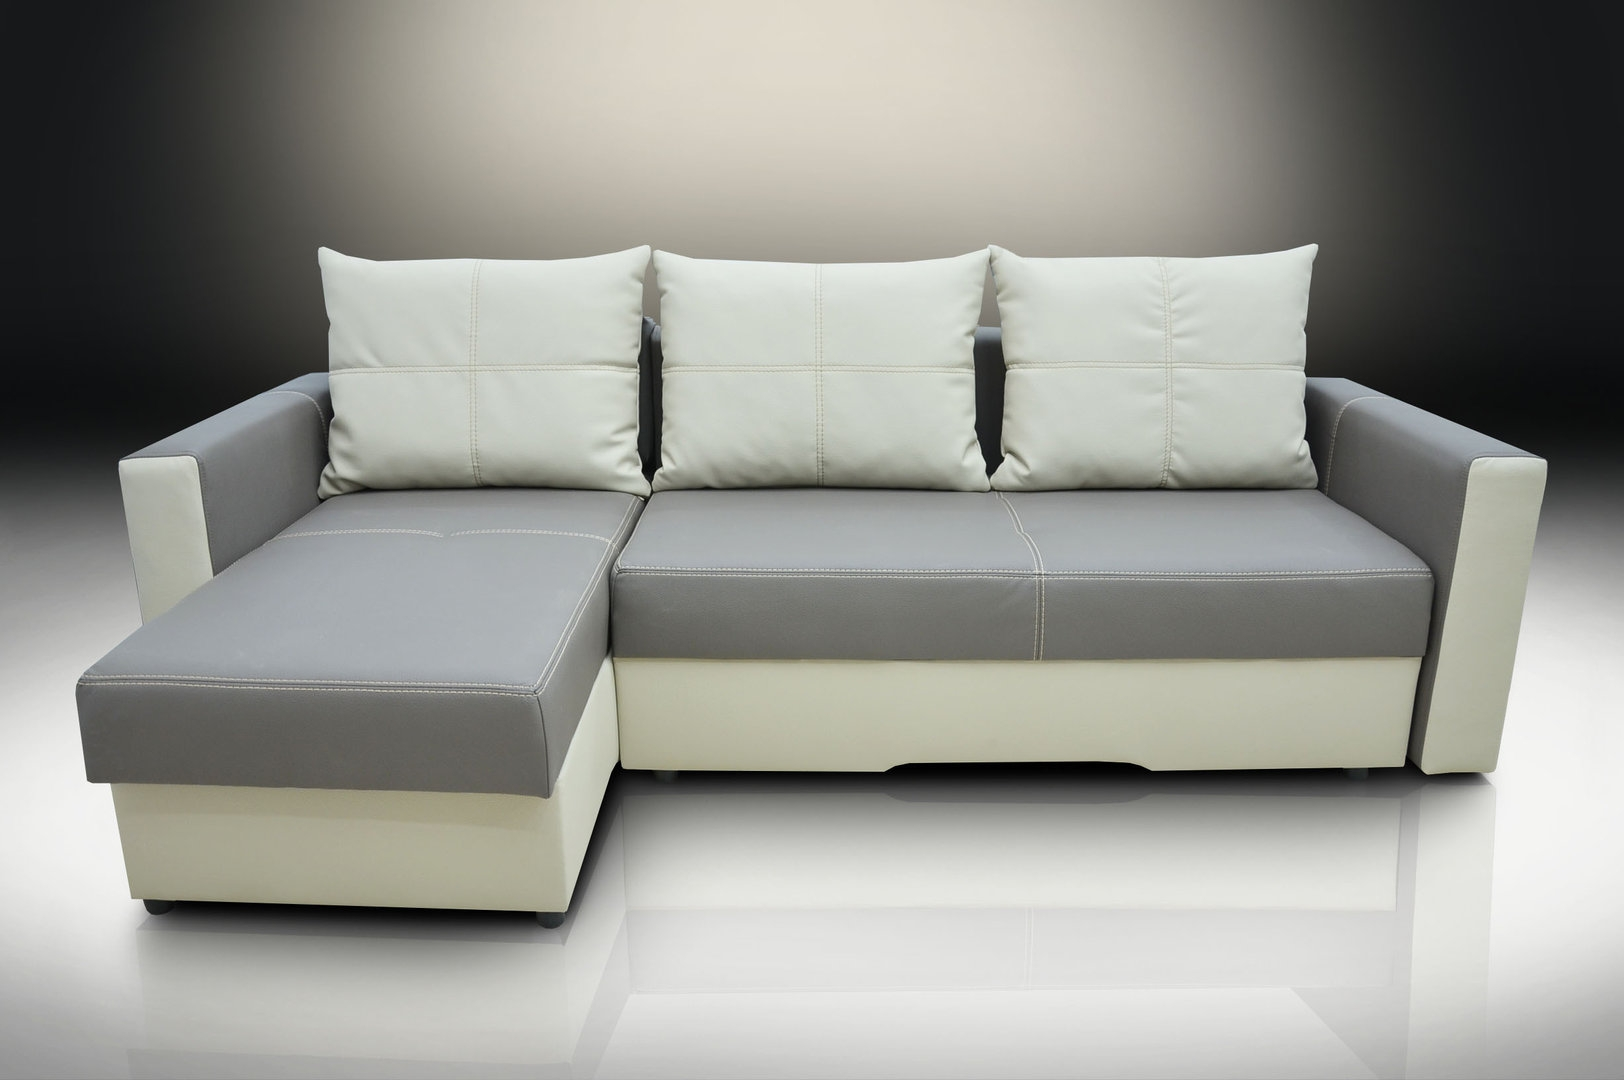 Bonded Leather Corner Sofa Bed Bristol Elephanttoffee Intended For Bristol Sofas (Image 1 of 15)